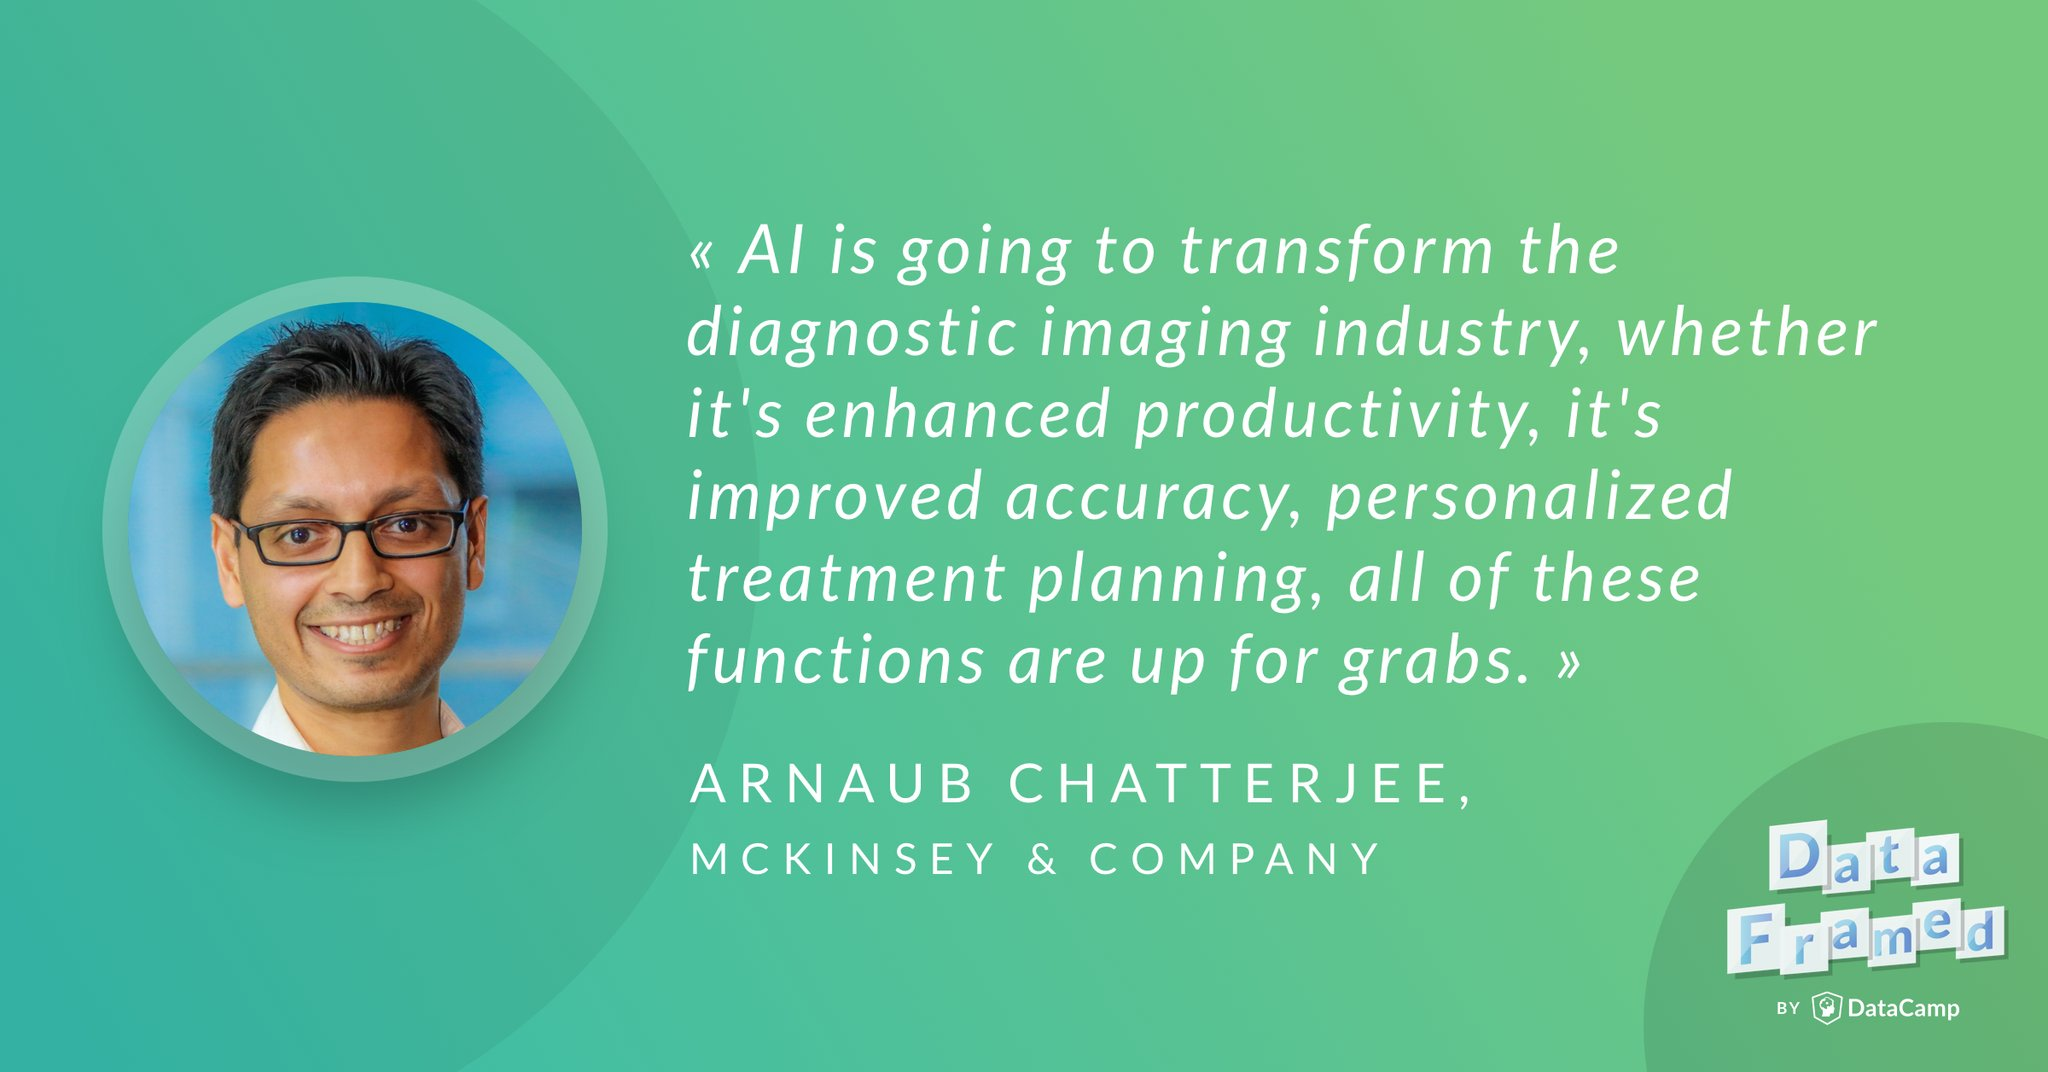 Arnaub Chatterjee discusses artificial intelligence (AI) and machine learning (ML) in healthcare.